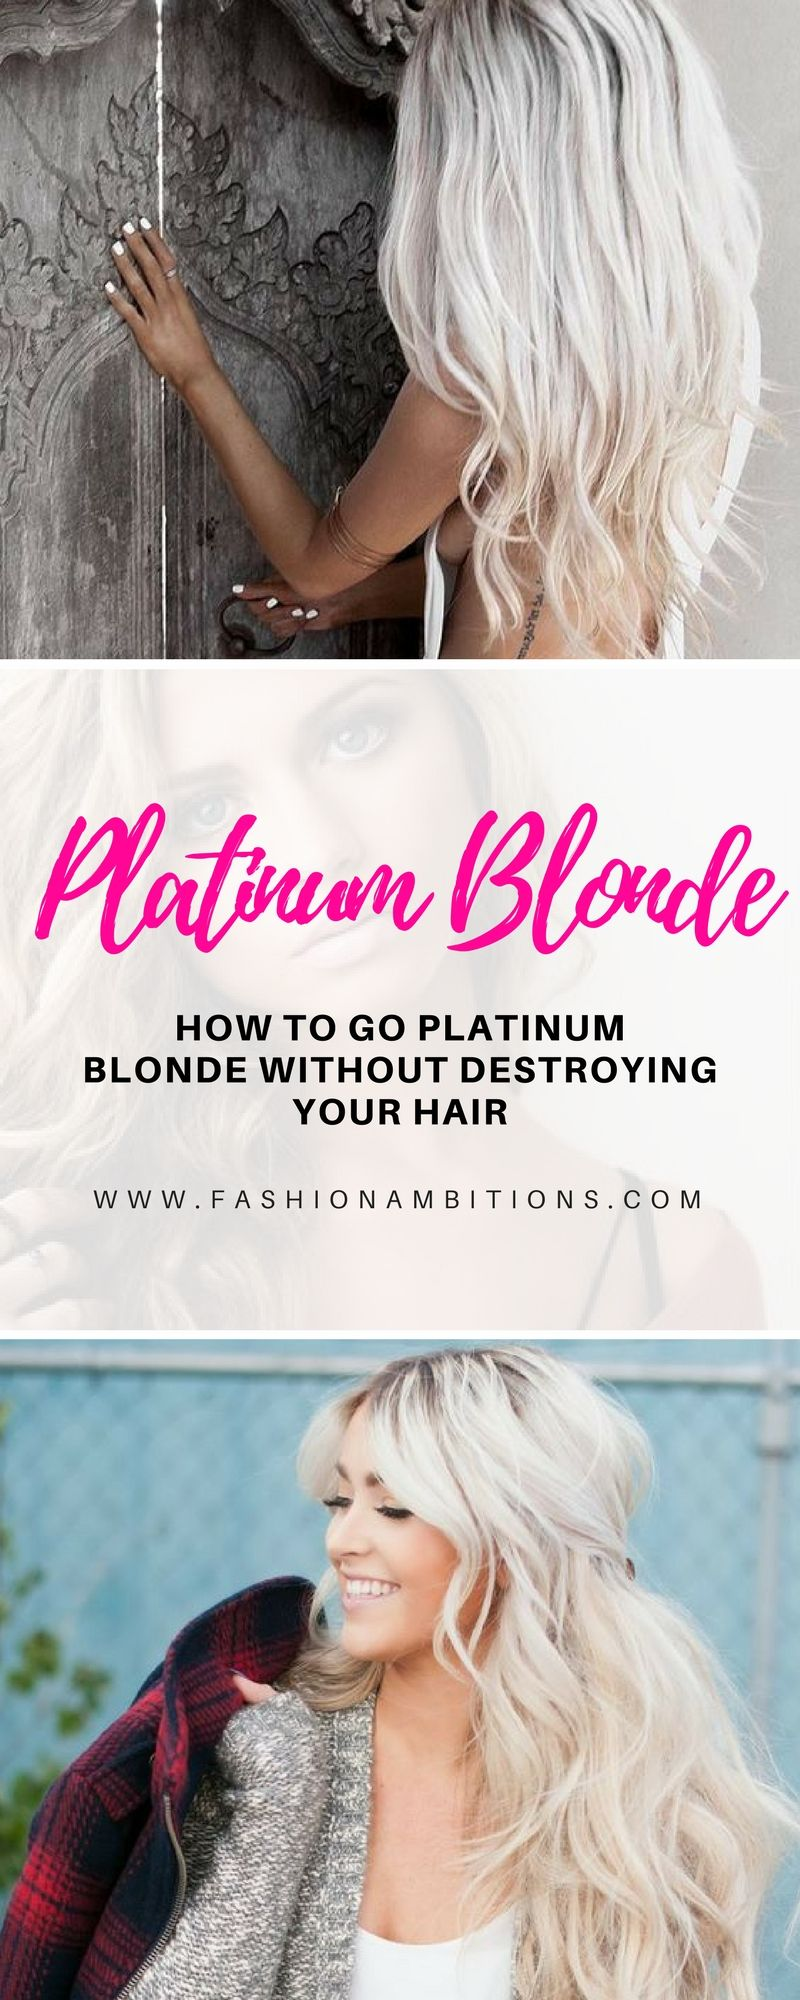 Want To Go Platinum Blonde Here's How To Do It Without